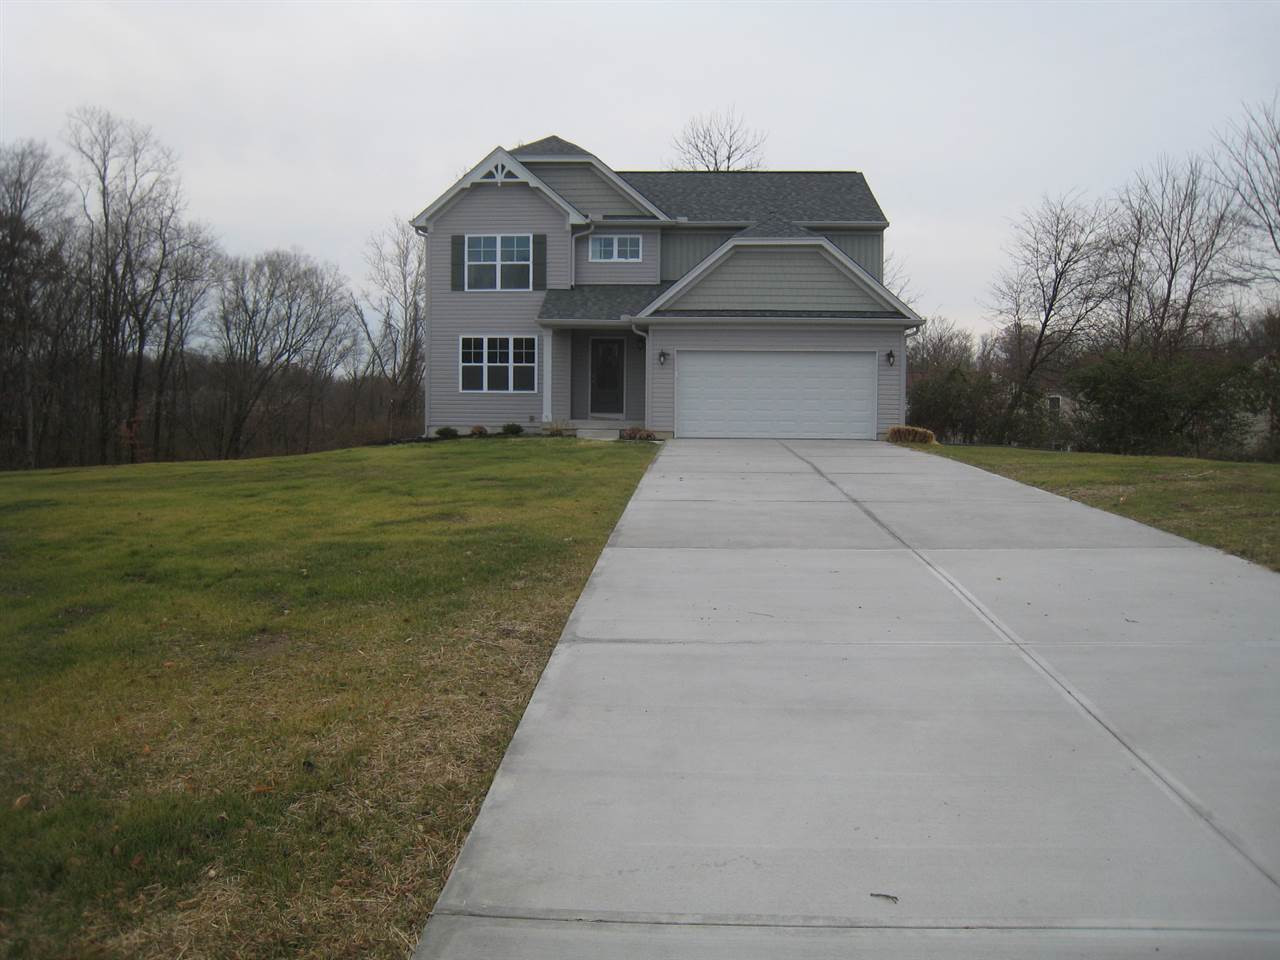 Photo 2 for 1083 Sprucehill Ln Independence, KY 41051